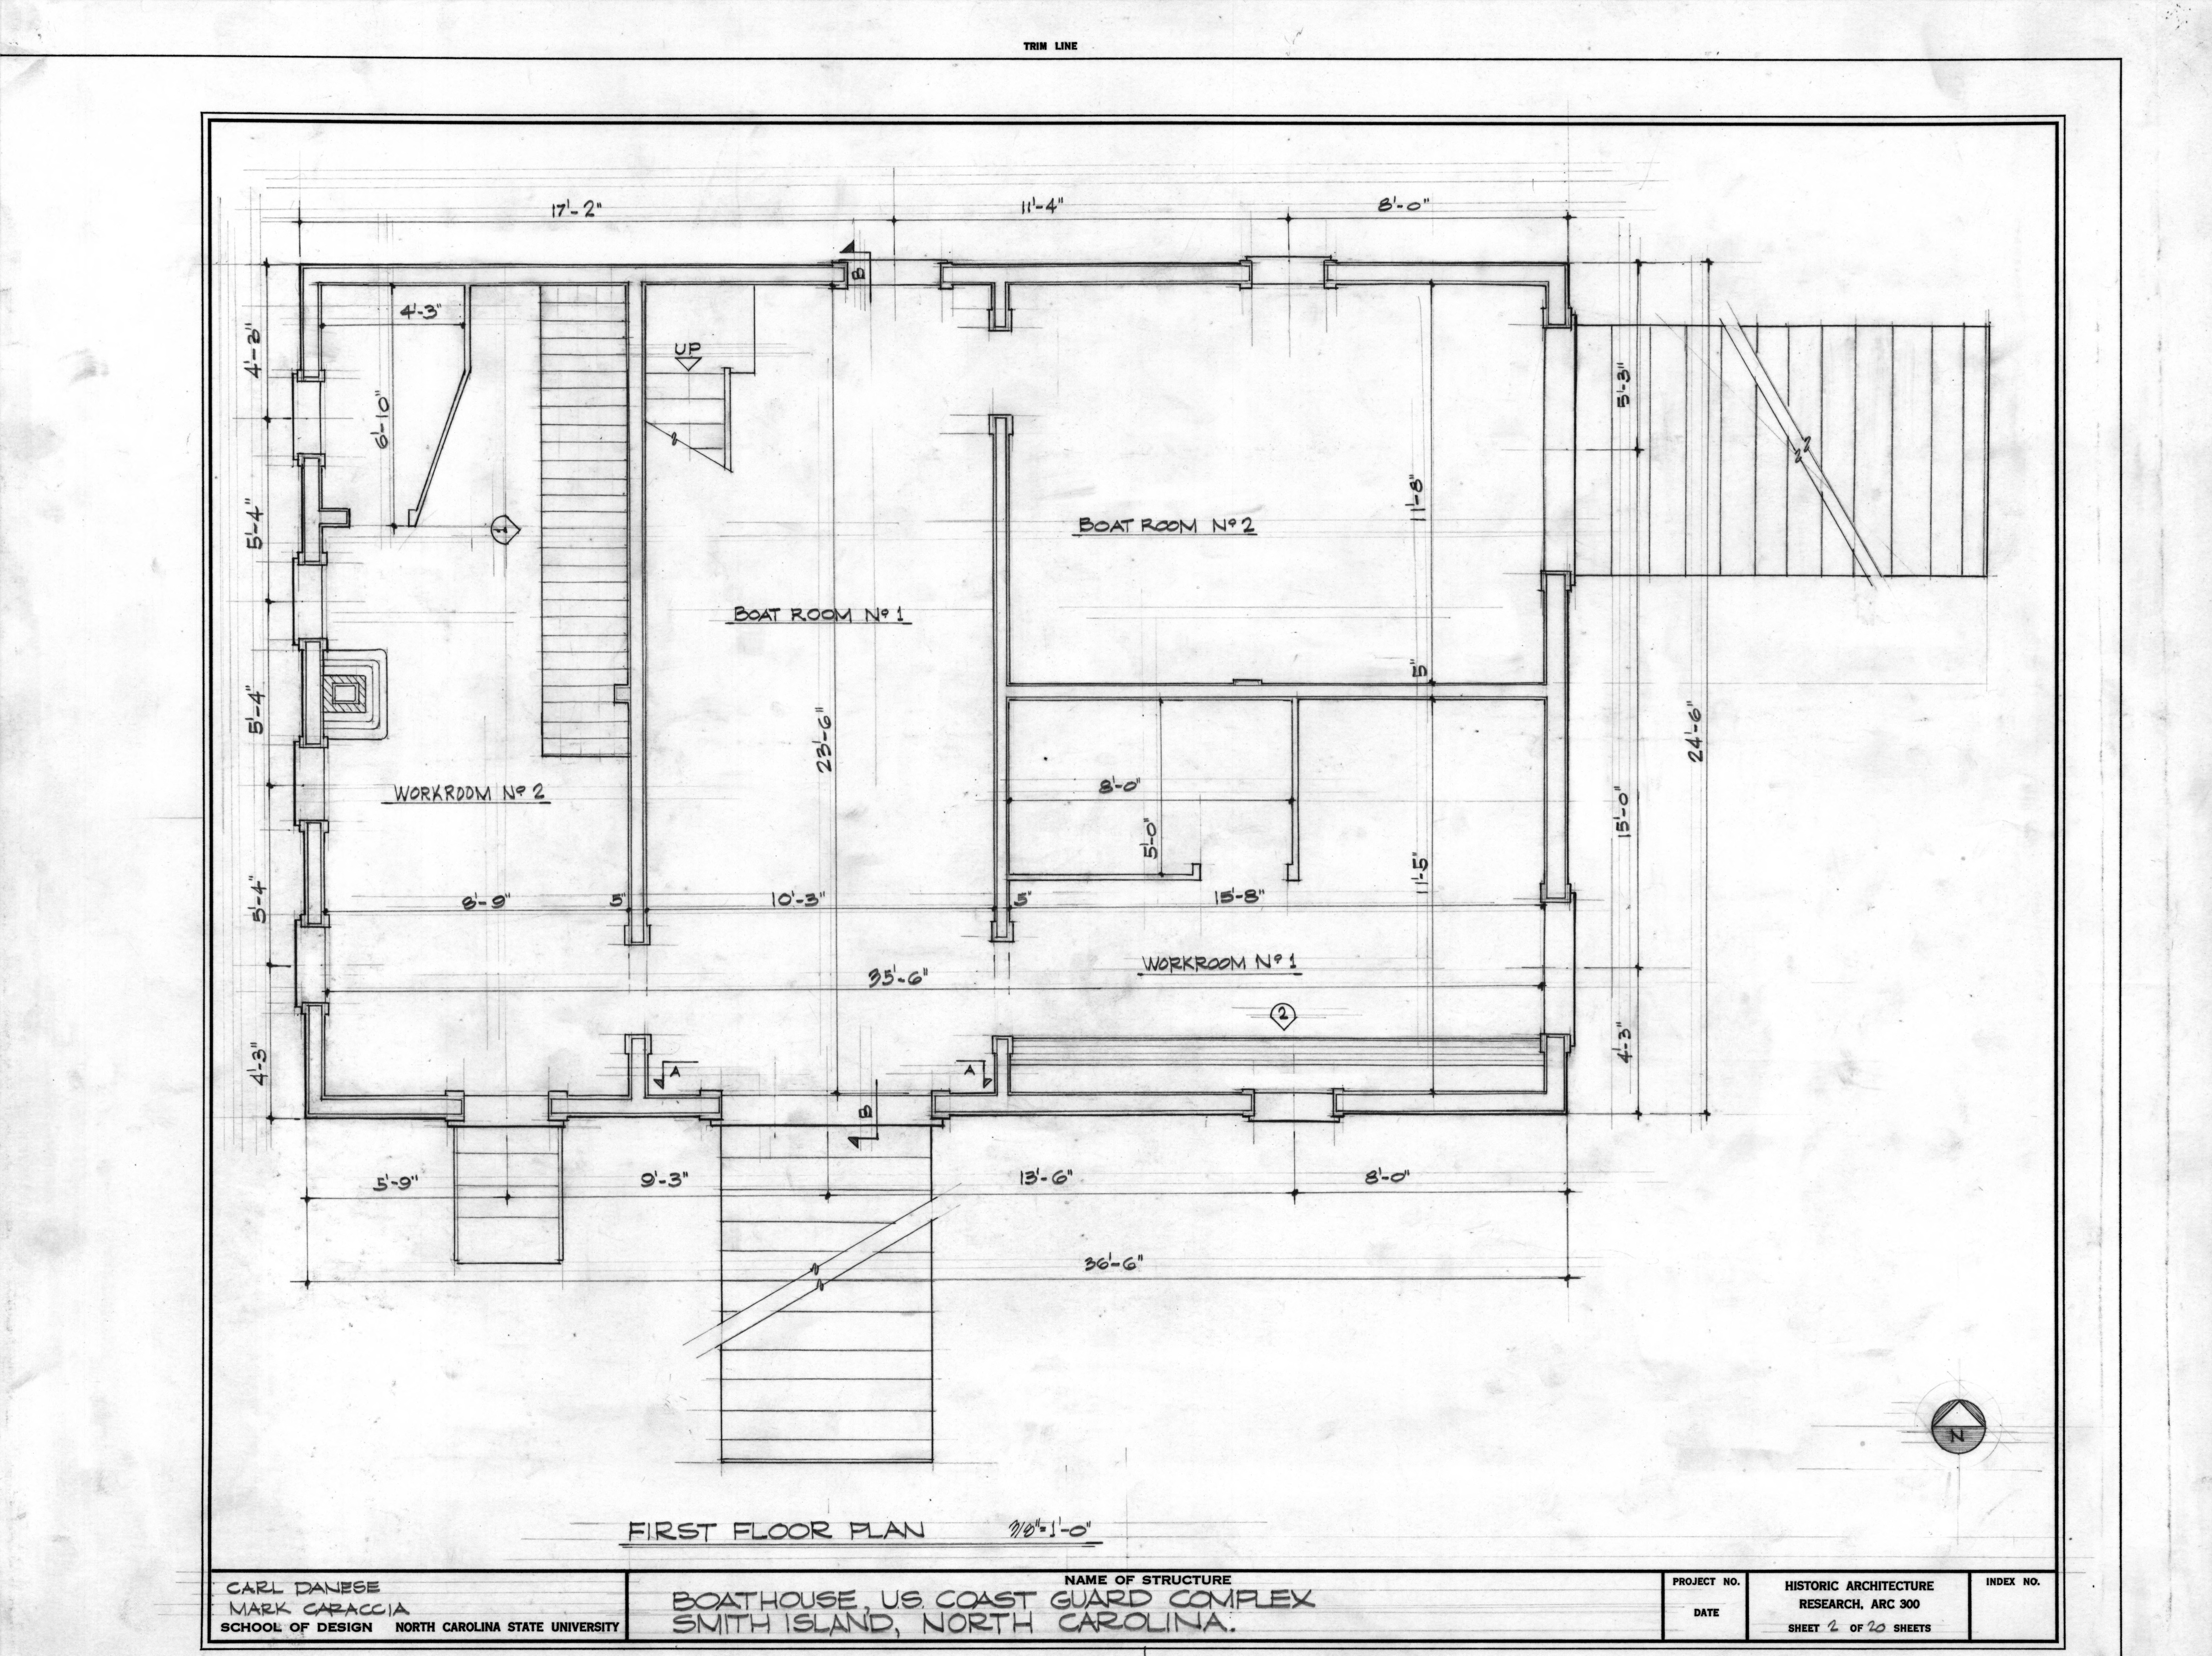 First Floor Plan Of Boathouse Cape Fear Lifesaving